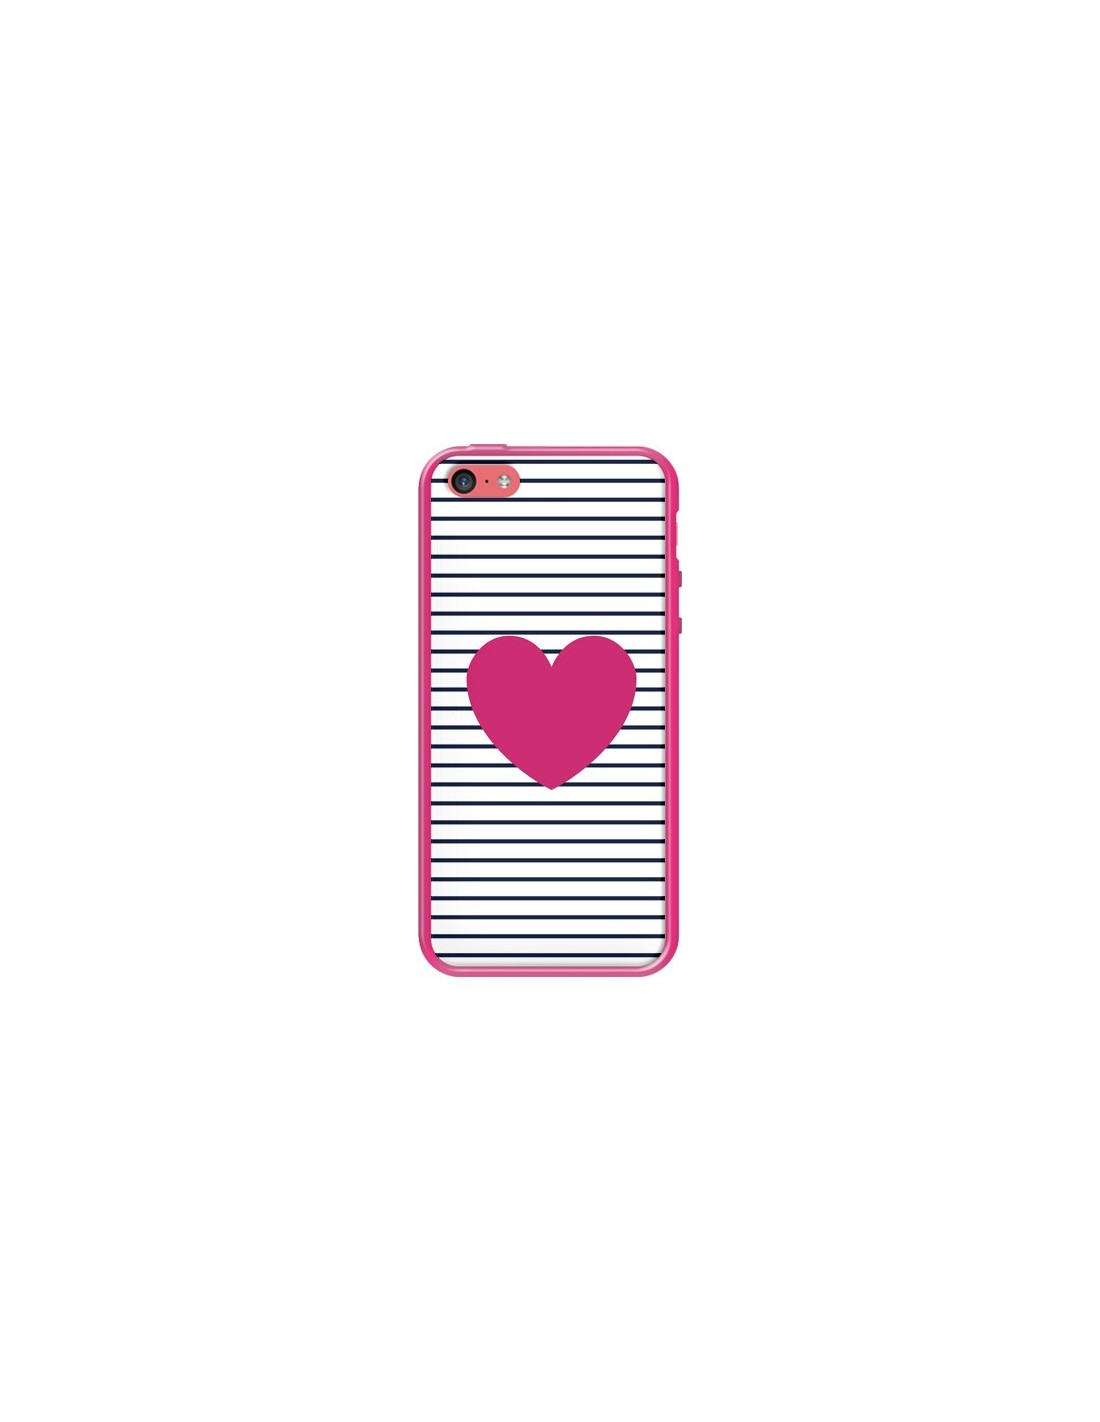 pictures of the iphone 1 coque coeur traits marin pour iphone 5c jonathan perez 17913